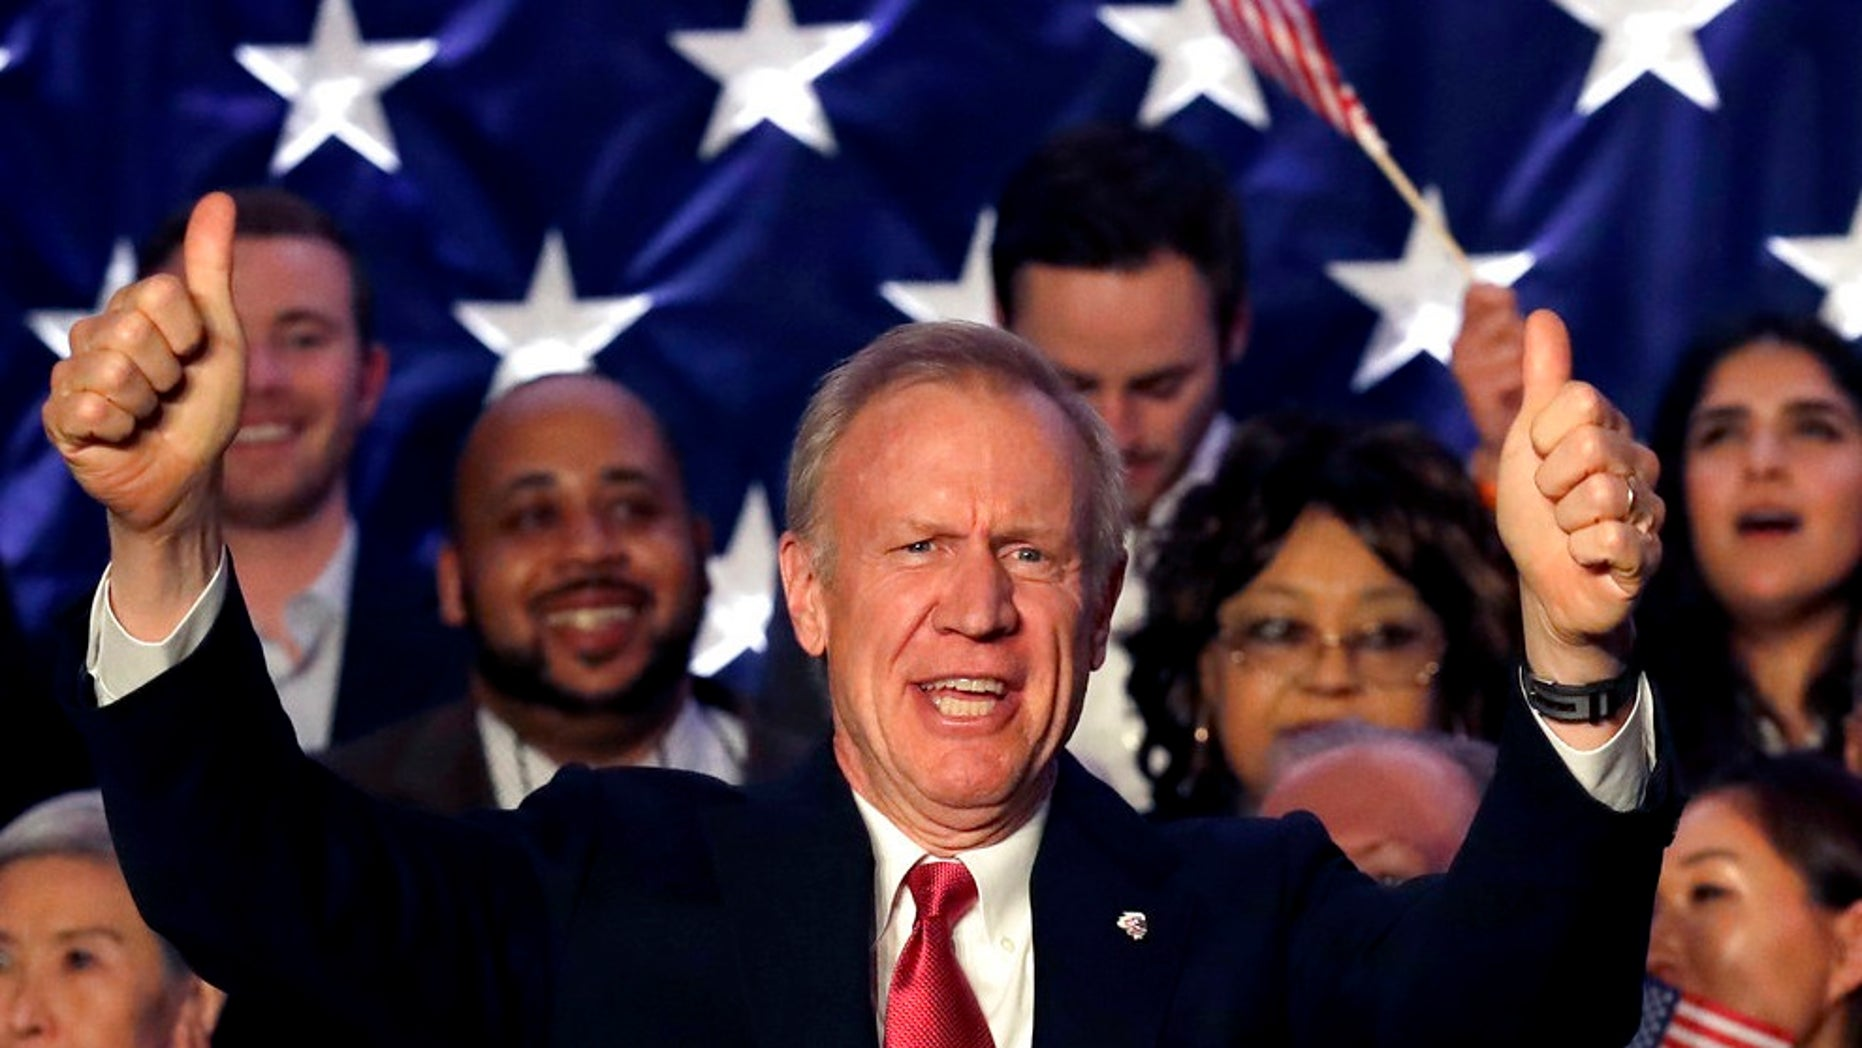 Illinois Republican Gov. Bruce Rauner addresses the crowd on primary election night, in Chicago, March 20, 2018.